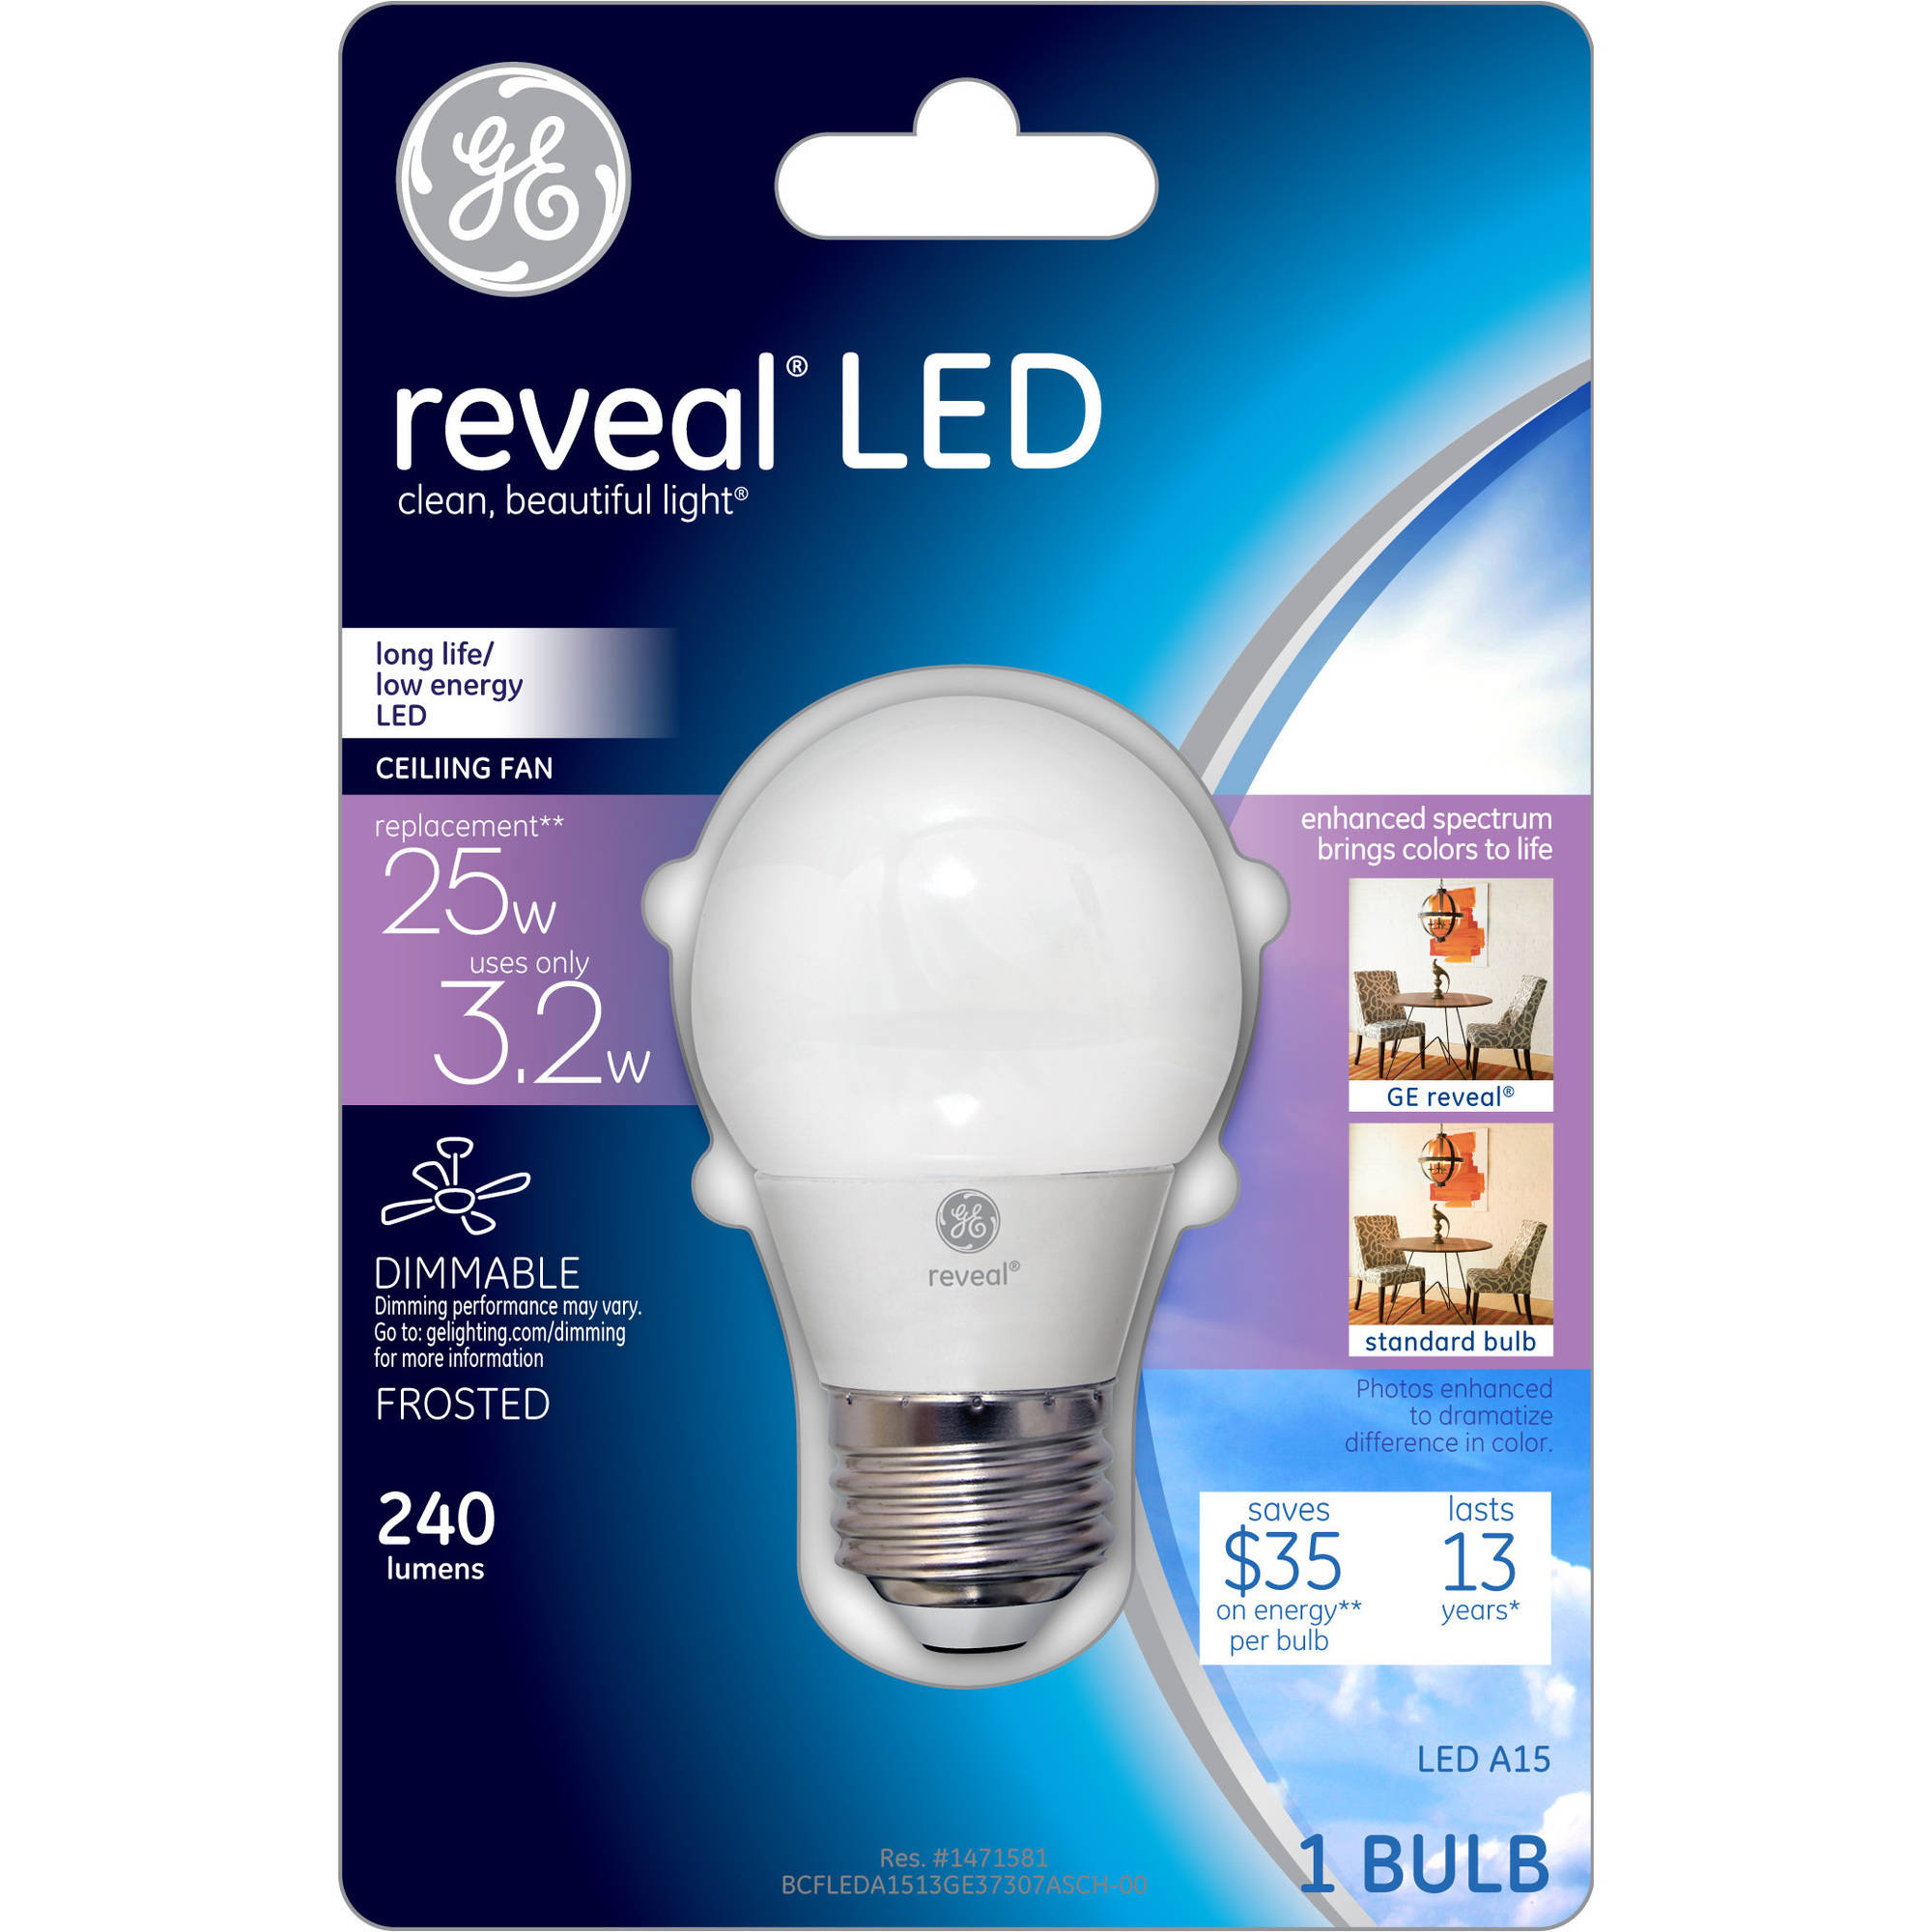 ge reveal 40w equivalent uses 32w frost a15 ceiling fan led bulb